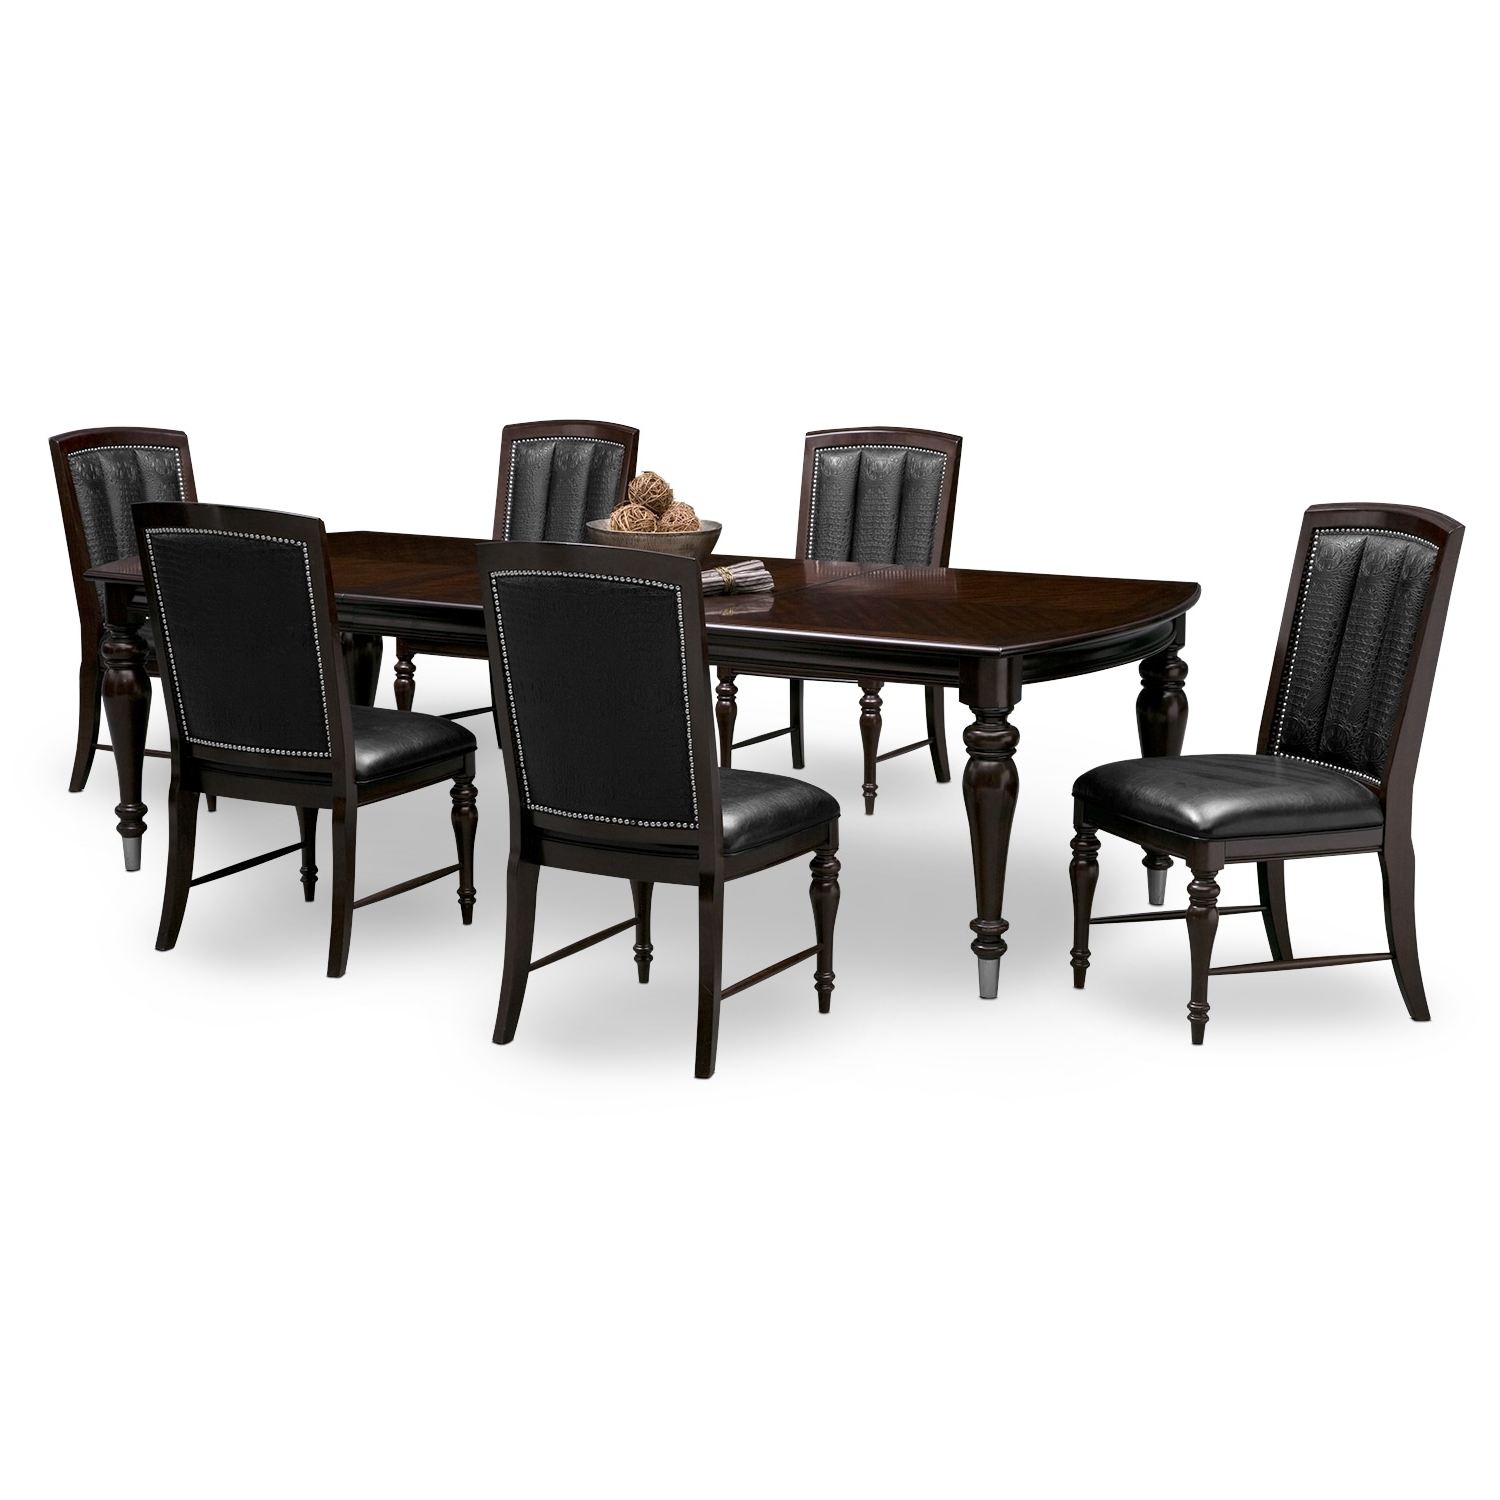 American Signature Throughout Recent Craftsman 9 Piece Extension Dining Sets With Uph Side Chairs (View 21 of 25)